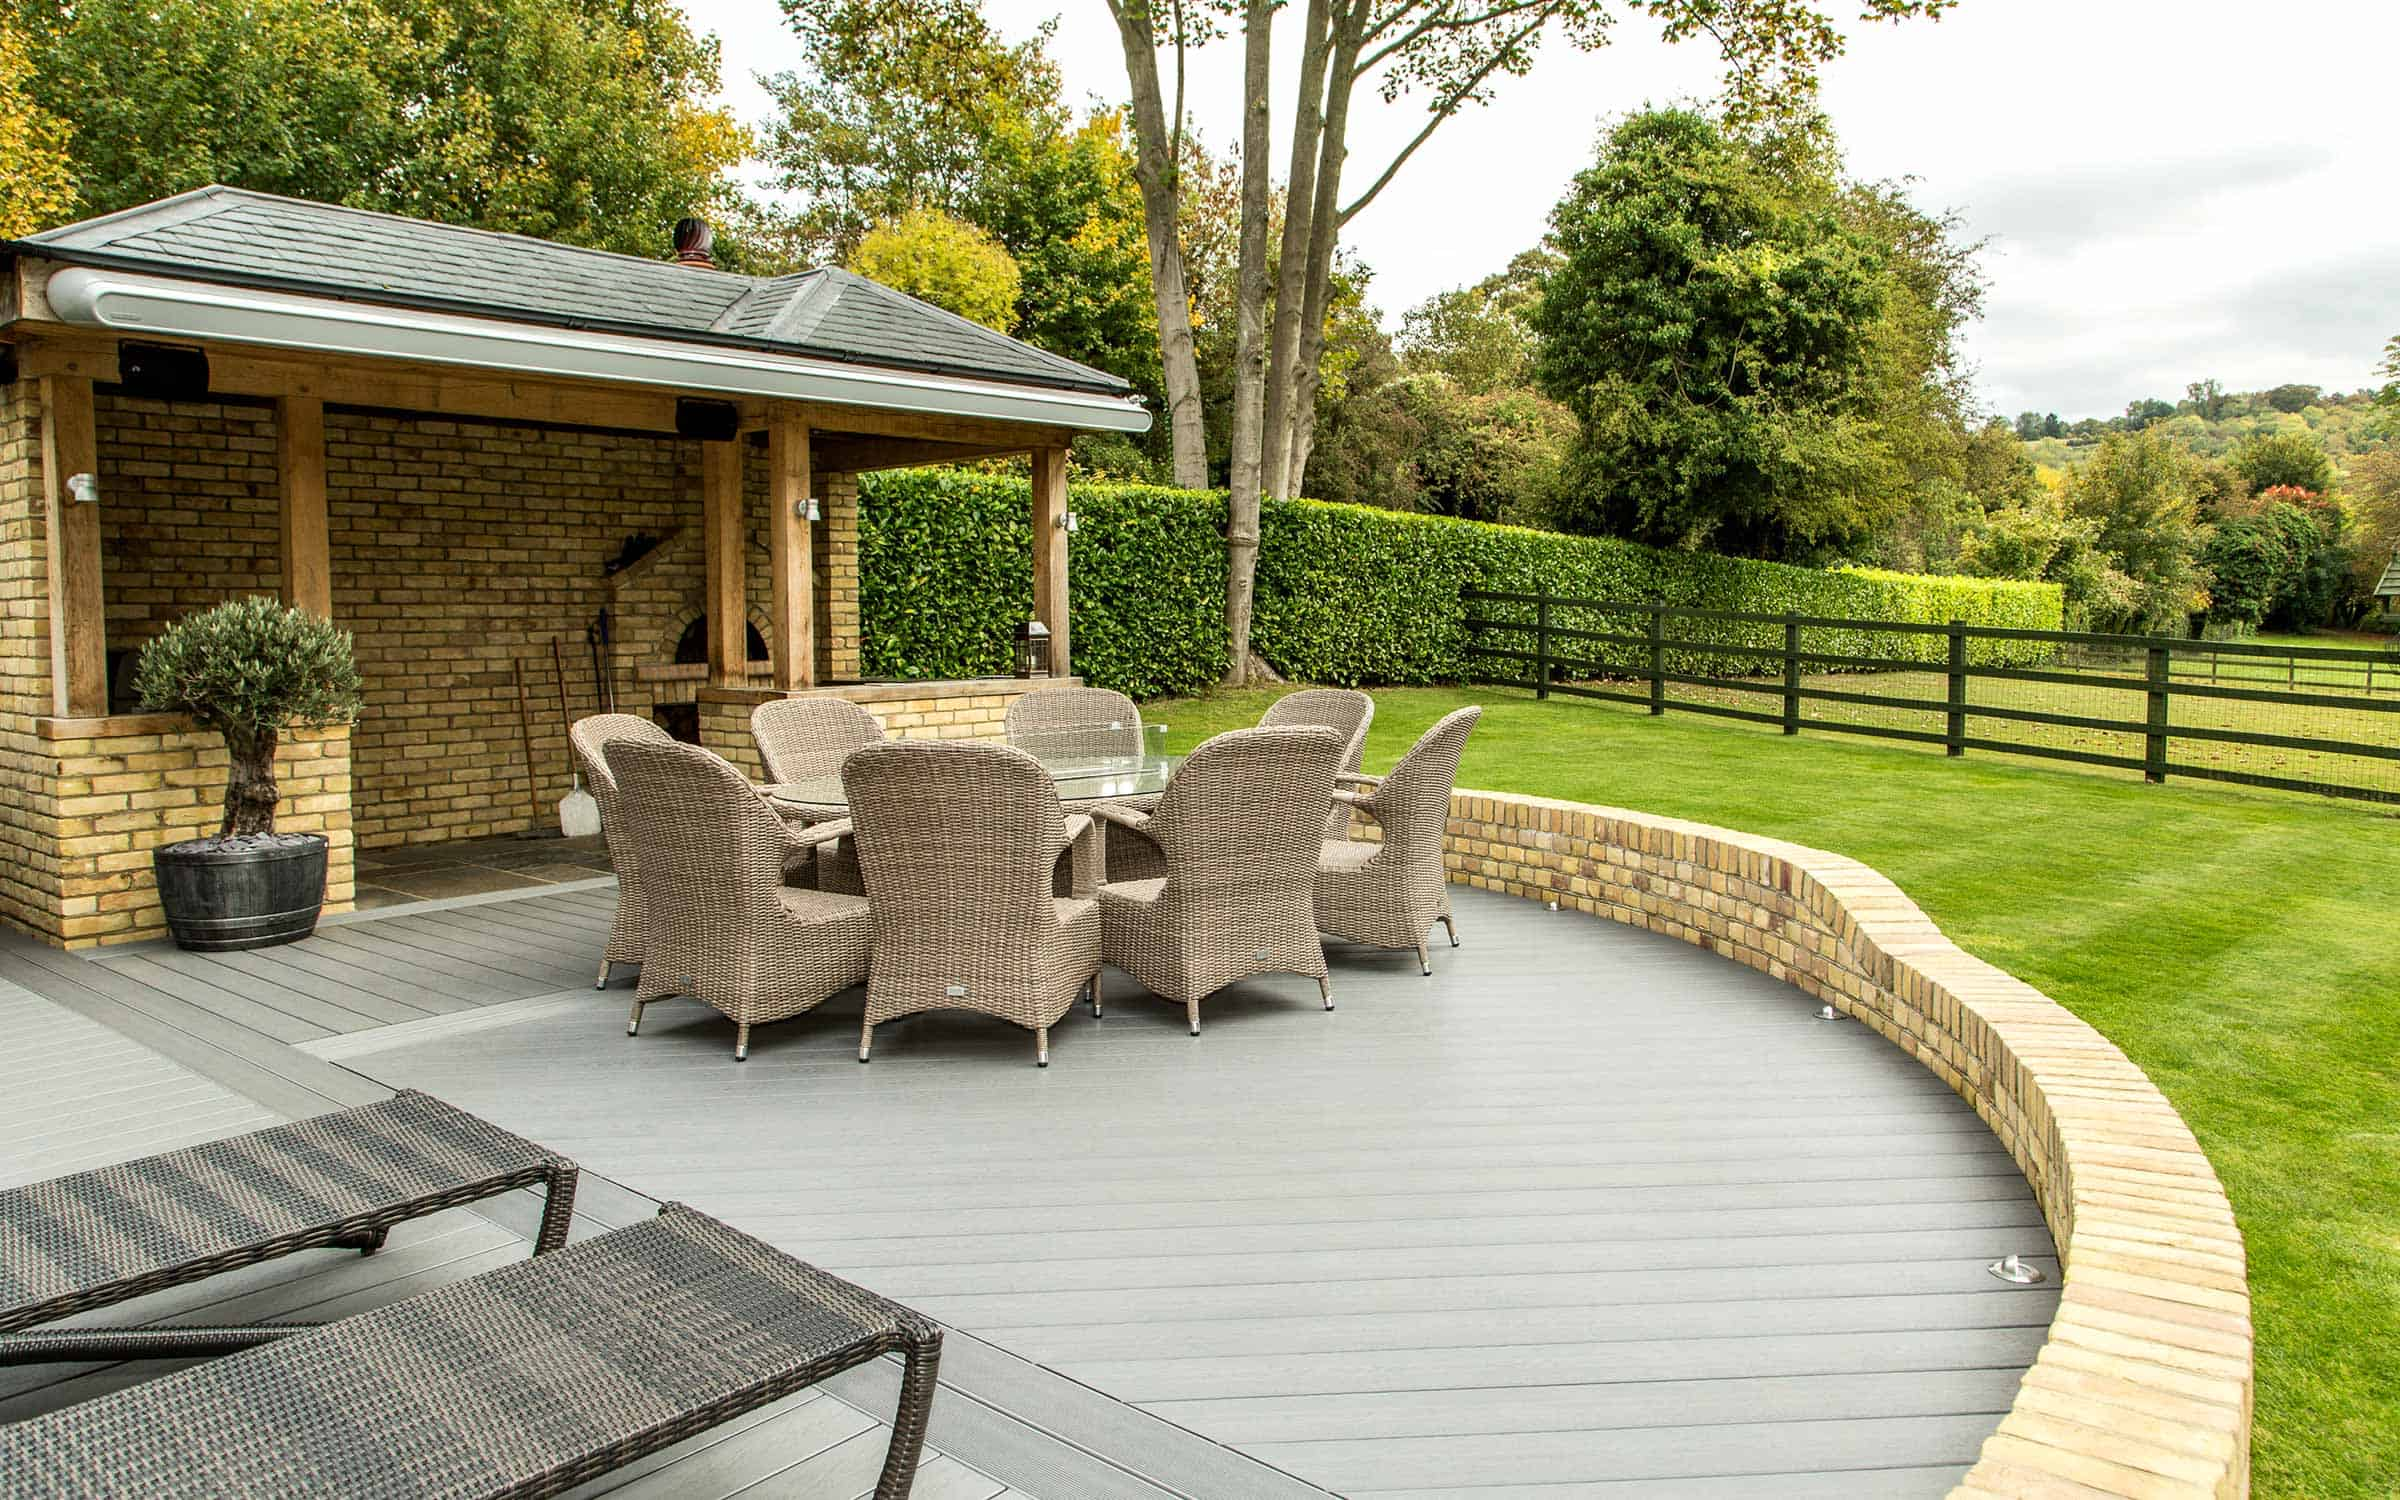 composite decking laying patterns